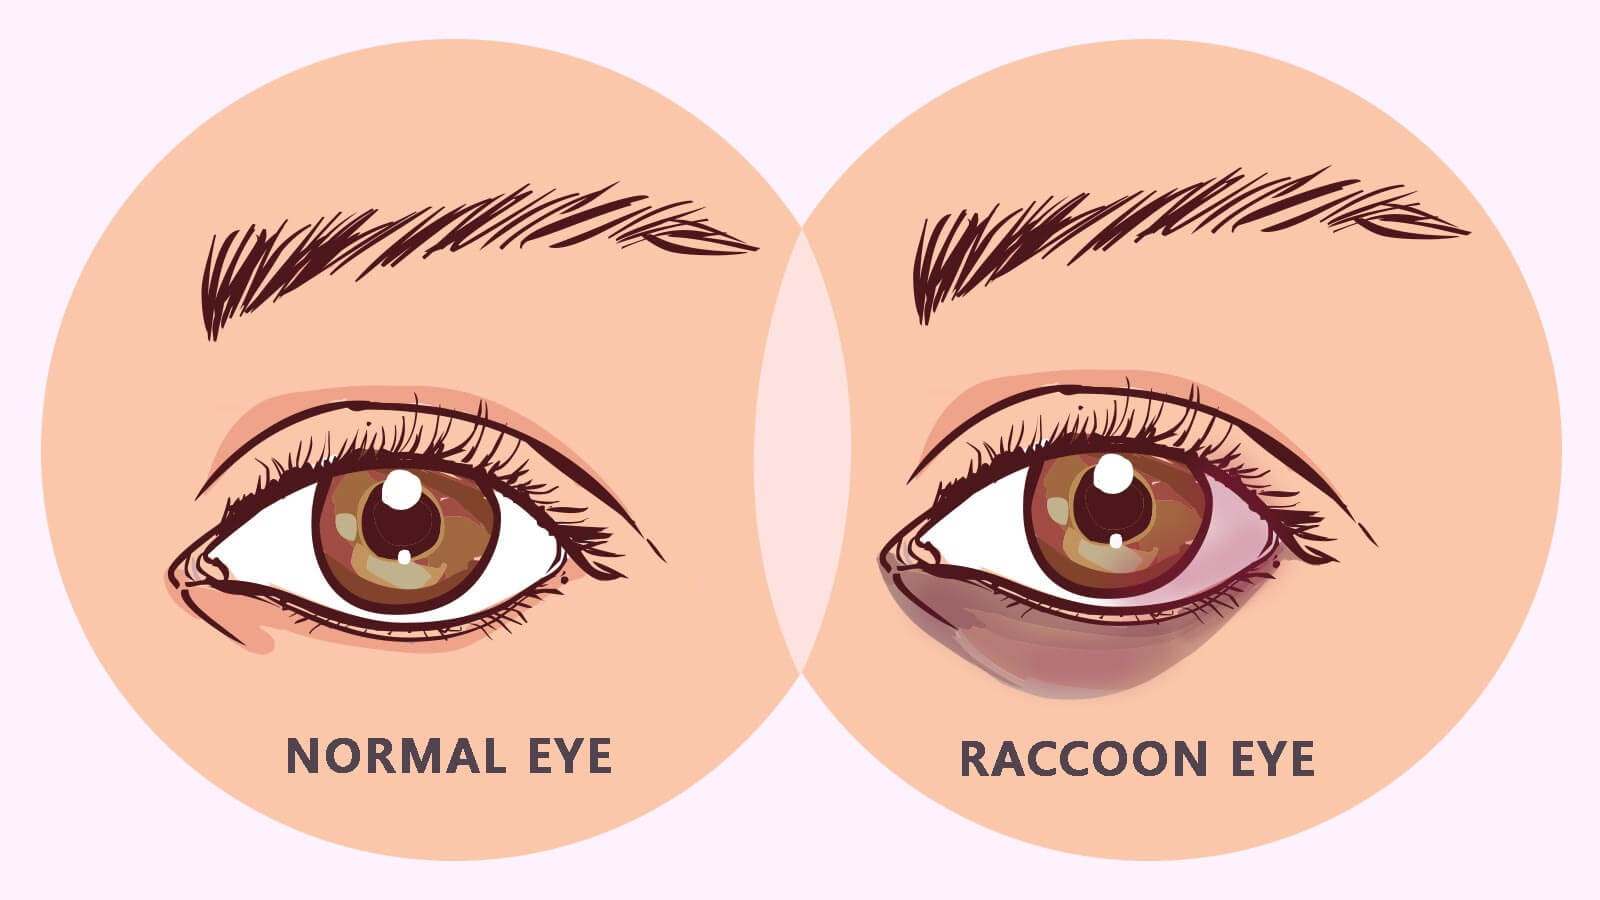 Getting to Know Everything About the Raccoon Eyes Condition